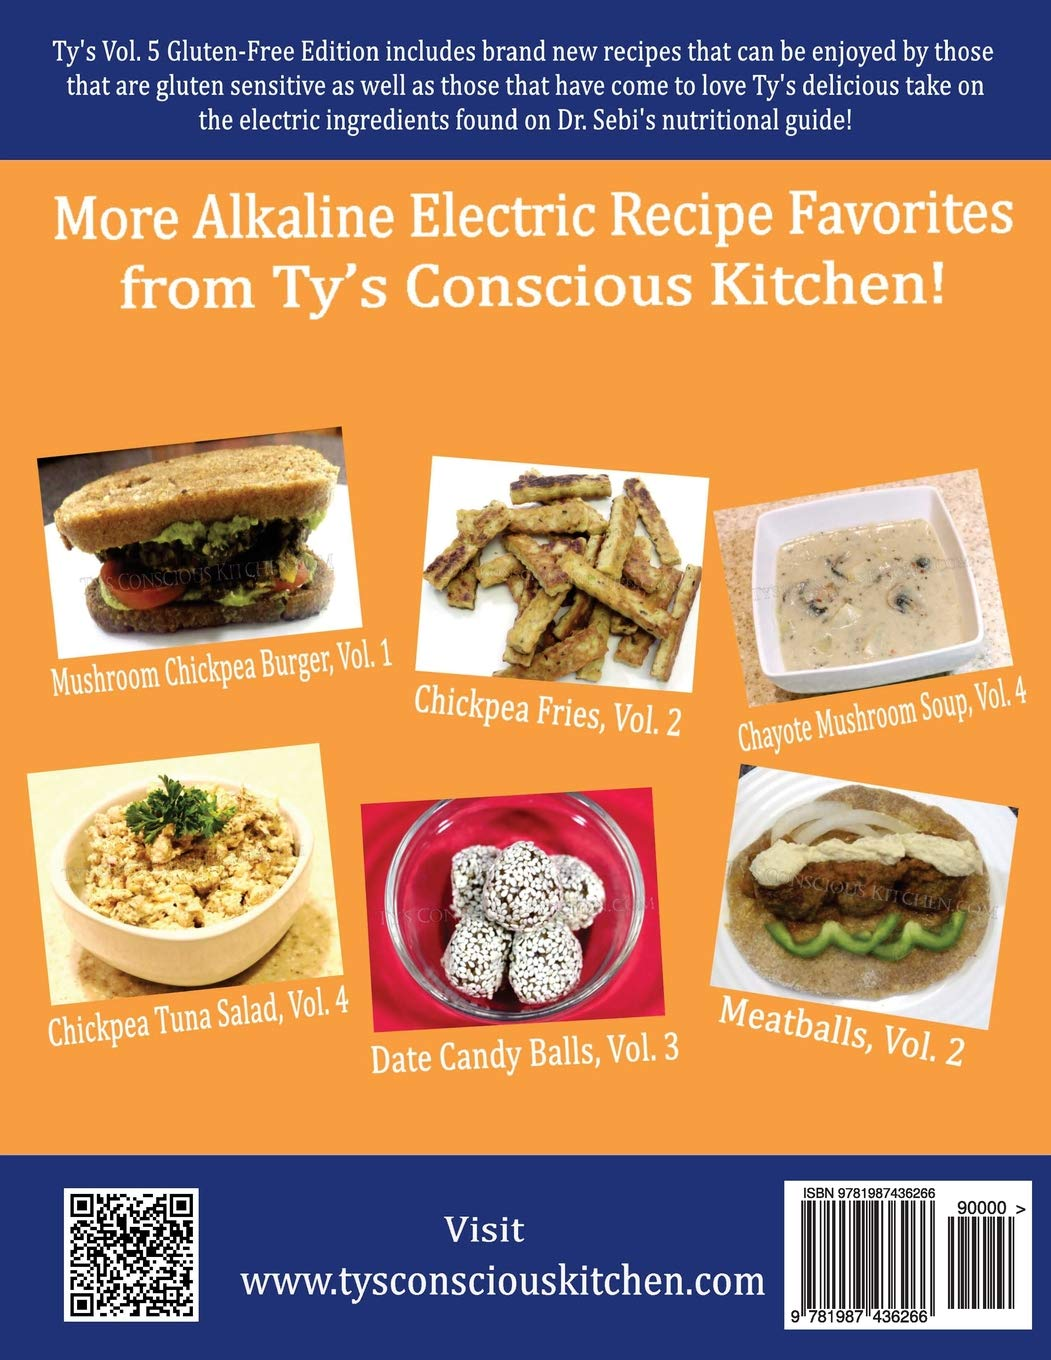 Amazon fr - Alkaline Electric Recipes From Ty's Conscious